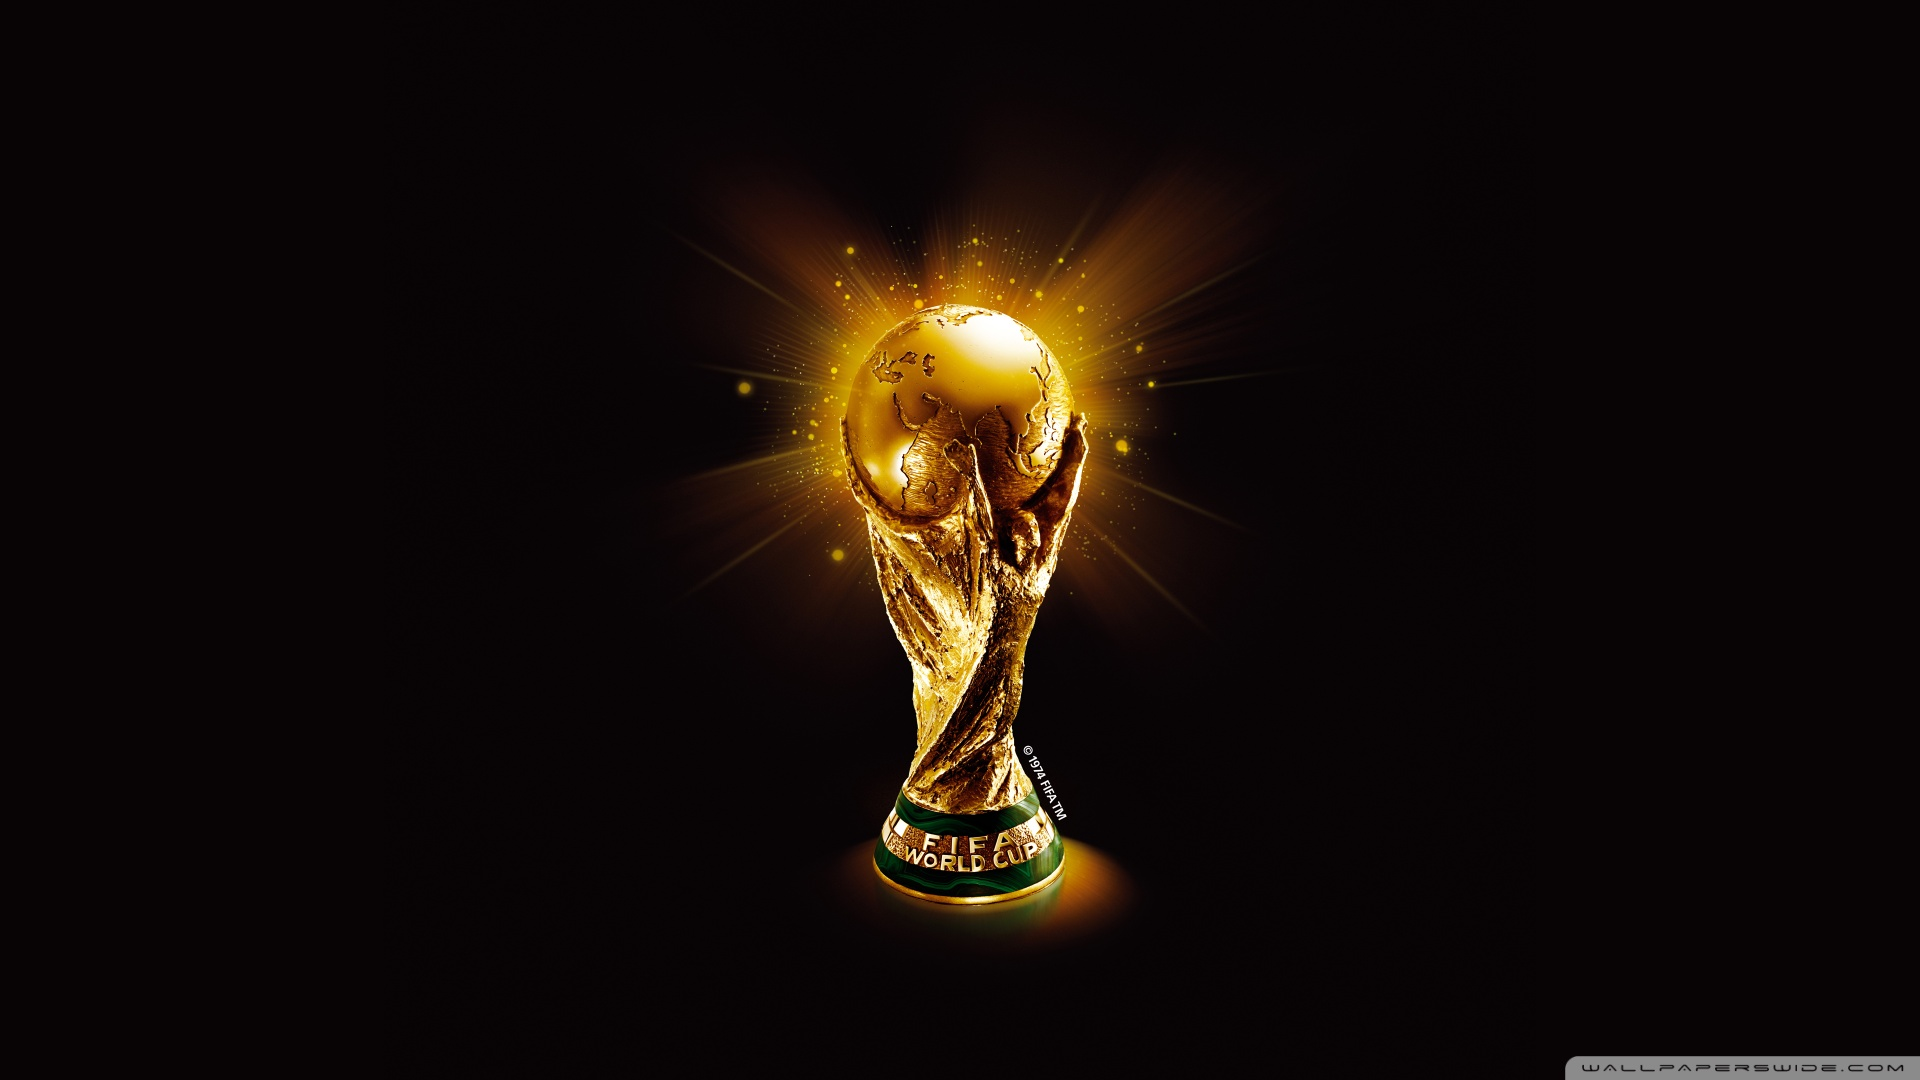 Fifa World Cup HD Wallpapers